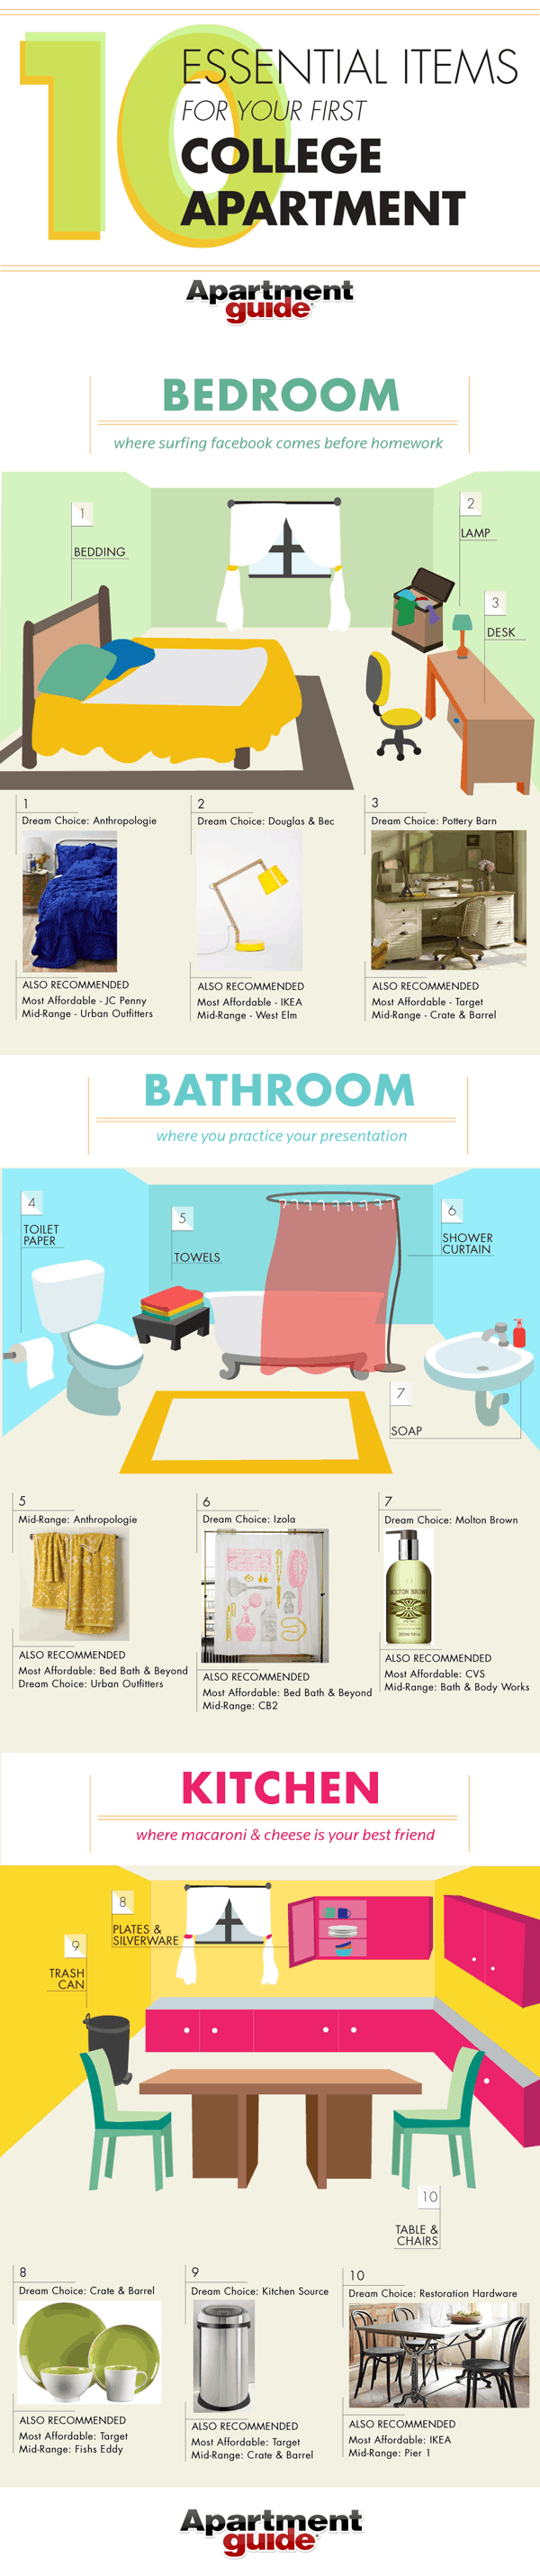 college-apartment-tips-infographic